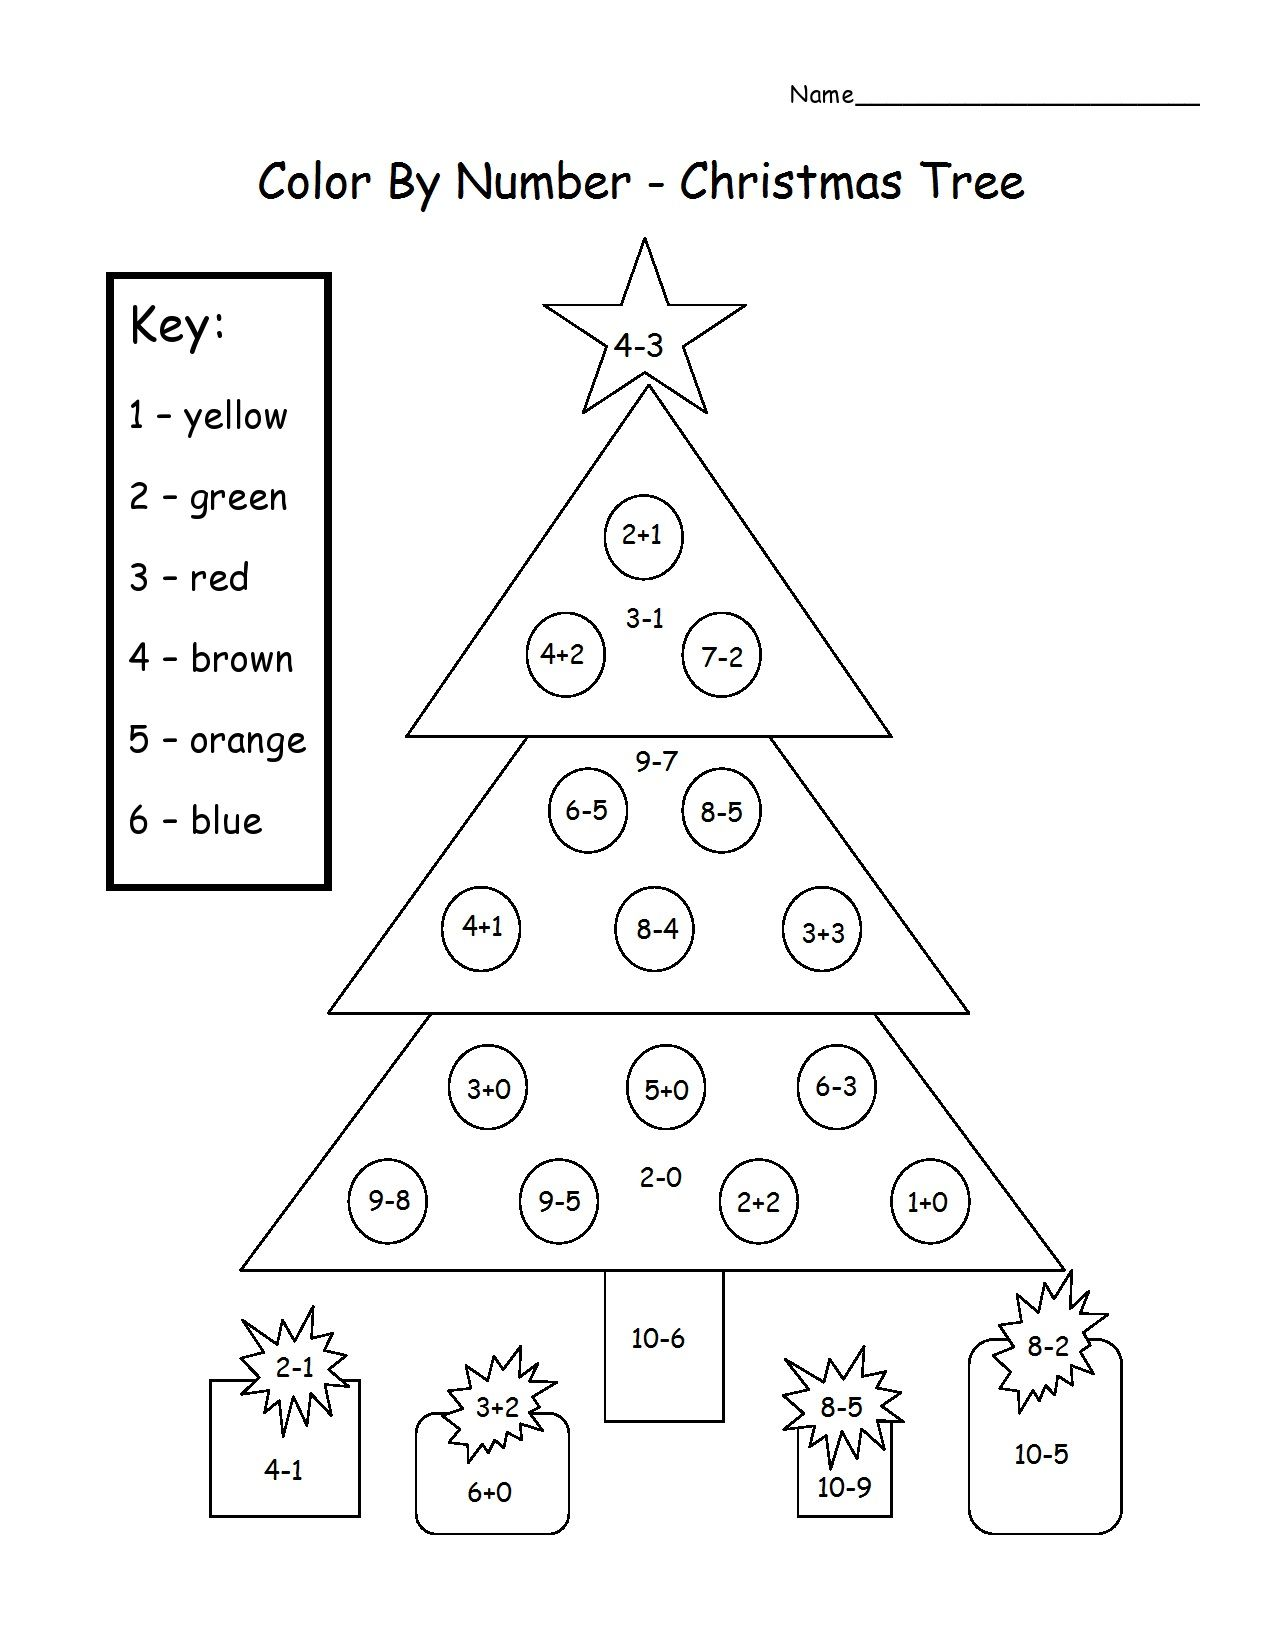 Christmas Tree Color By Number Add Subtract Printable – Color by Number Christmas Worksheets